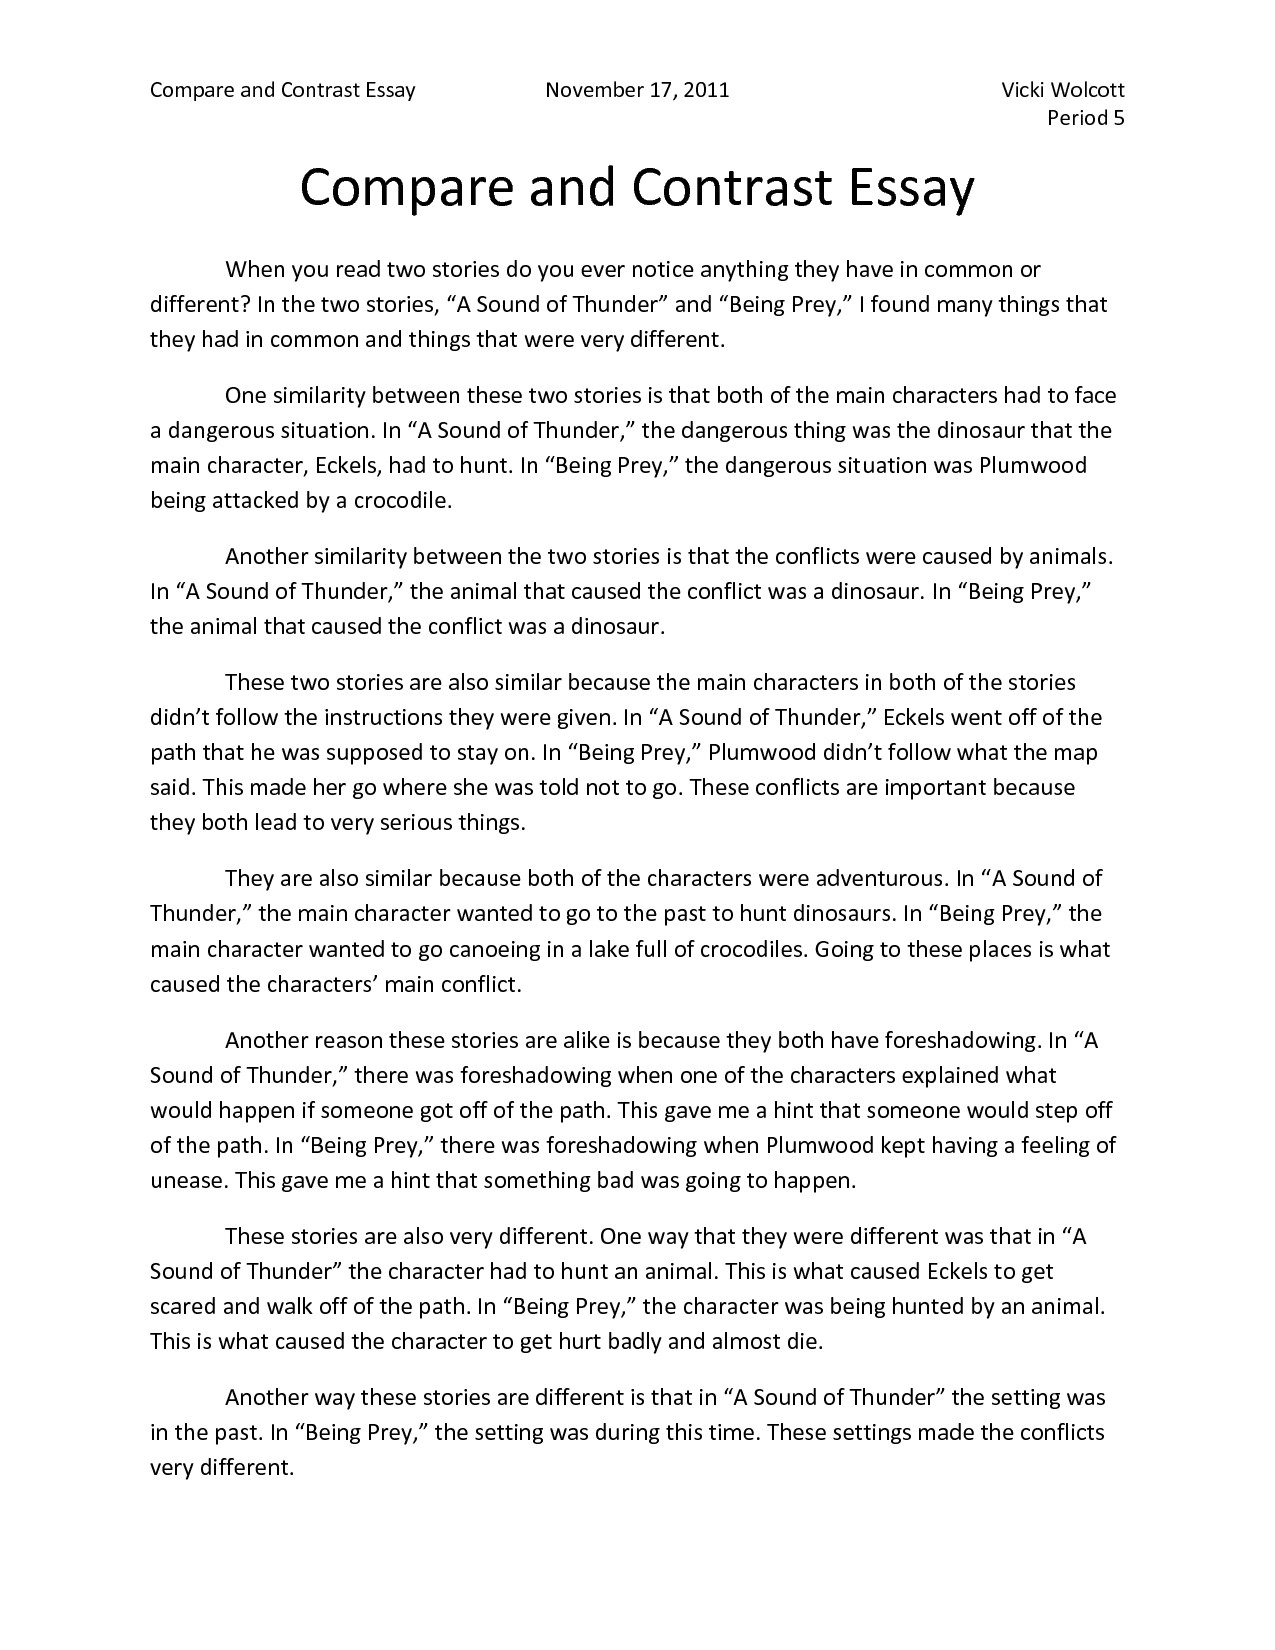 003 Essay Example An Of Compare And Contrast Comparison Ideas Maus Archaicawful Sample Pdf High School College For 5th Grade Full